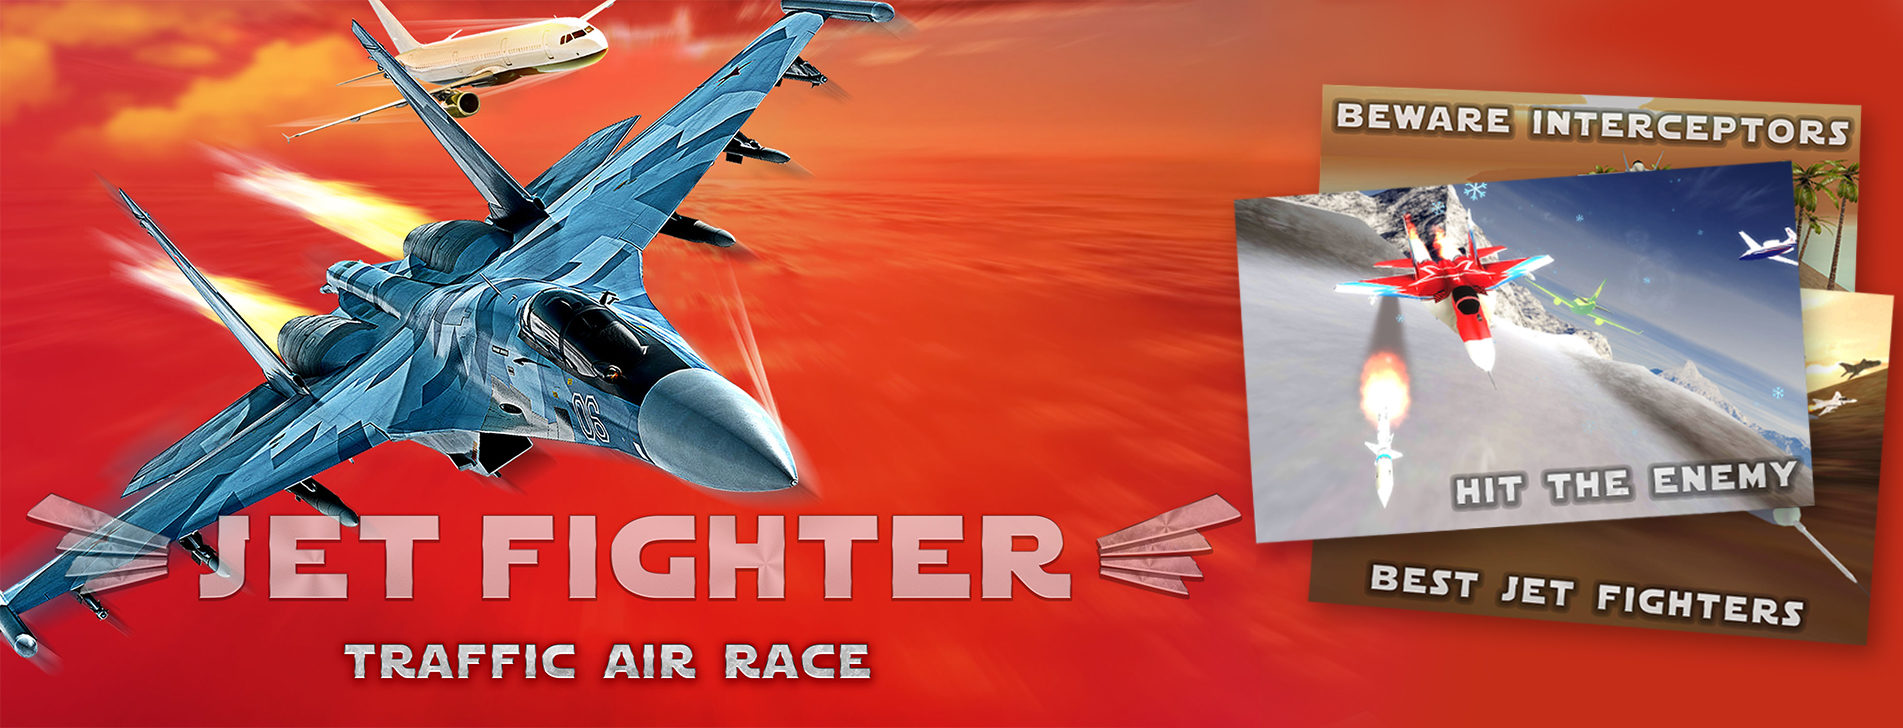 GAME LOCALIZATION: JET FIGHTER AIR RACE FROM ARPAPLUS